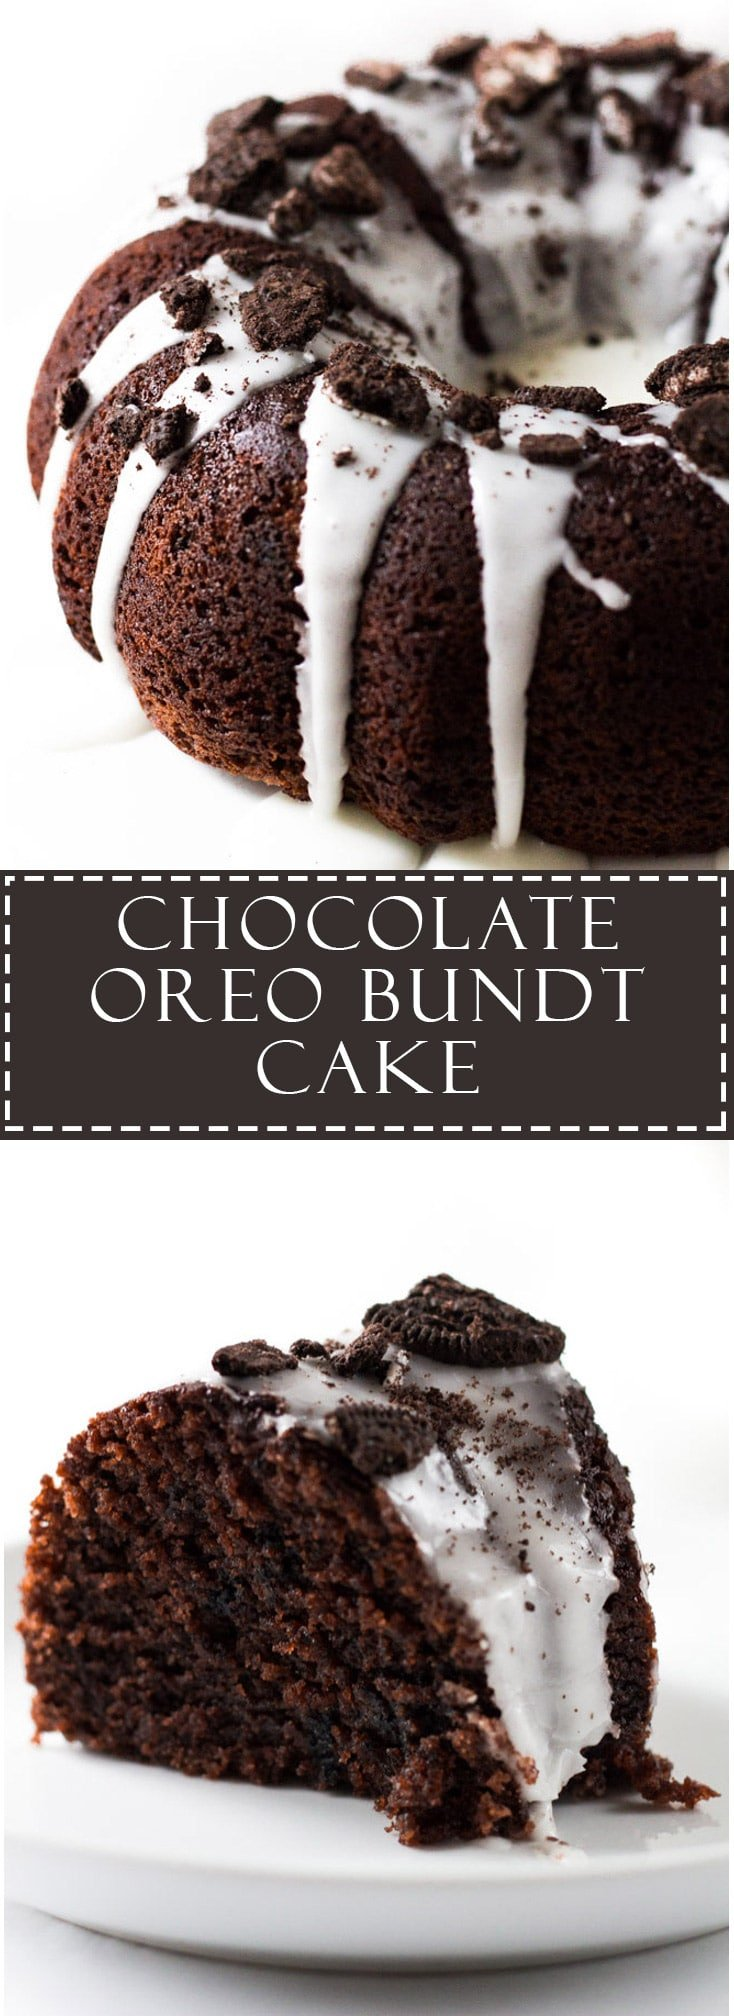 Chocolate Oreo Bundt Cake - Soft and moist chocolate bundt cake stuffed with Oreo chunks, iced and topped with even more Oreos!